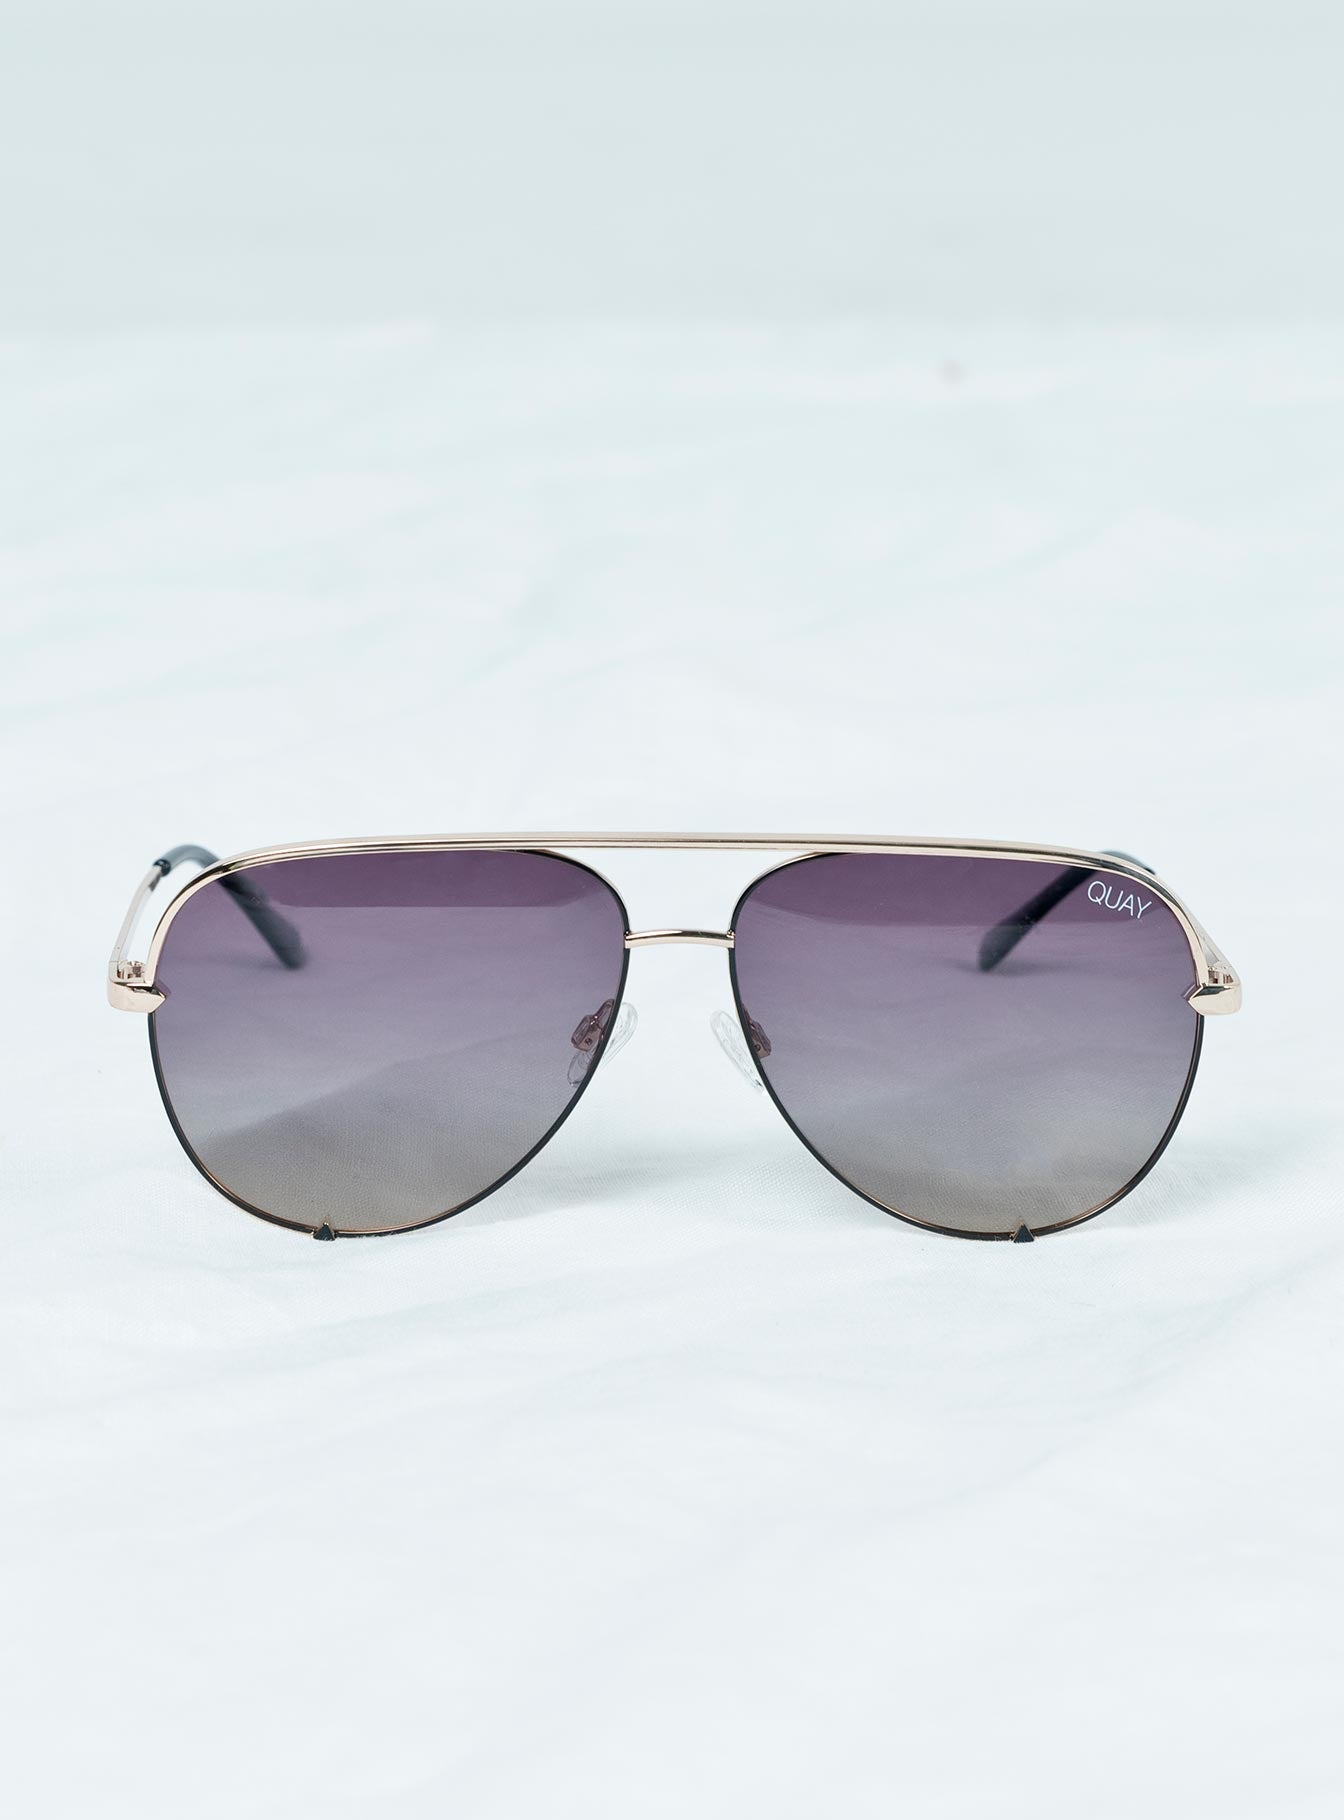 Quay Australia High Key Sunglasses